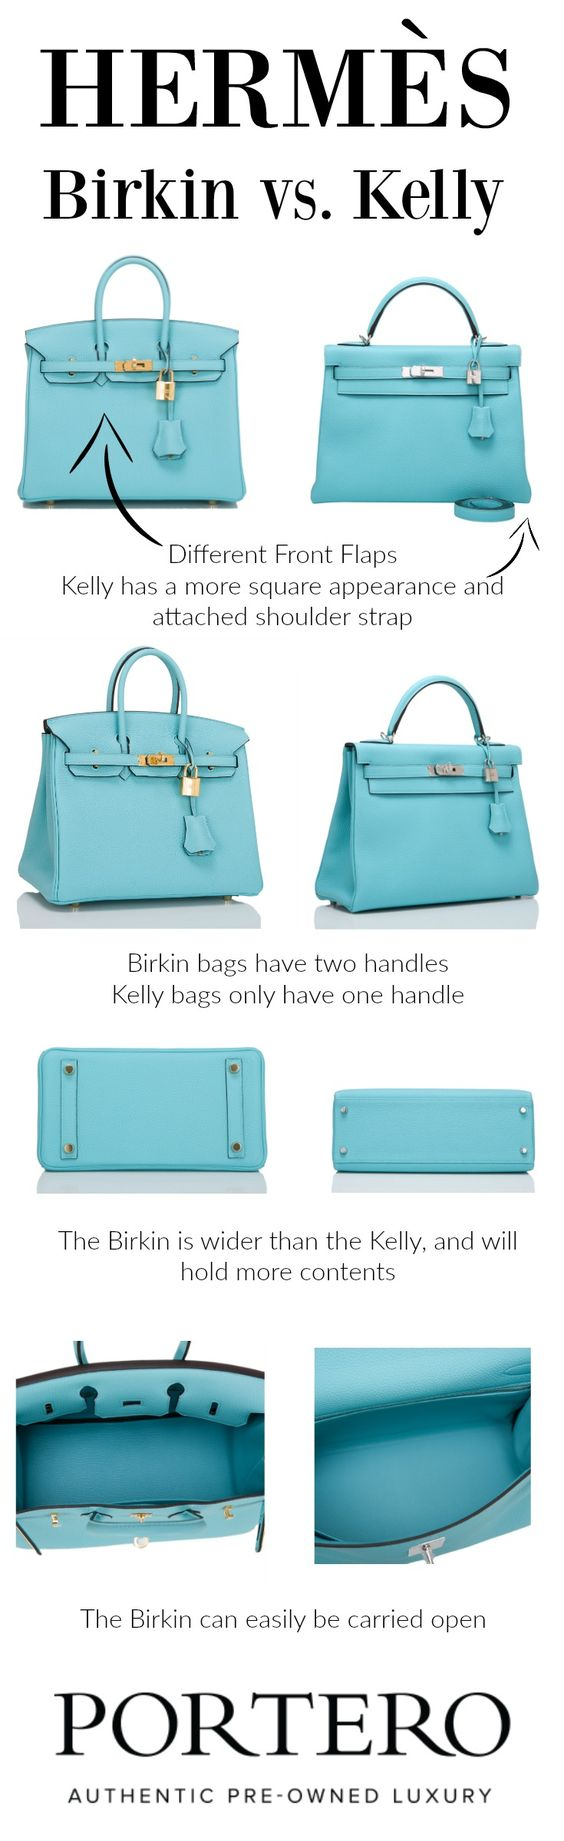 The difference between the Birkin and the Kelly bags.